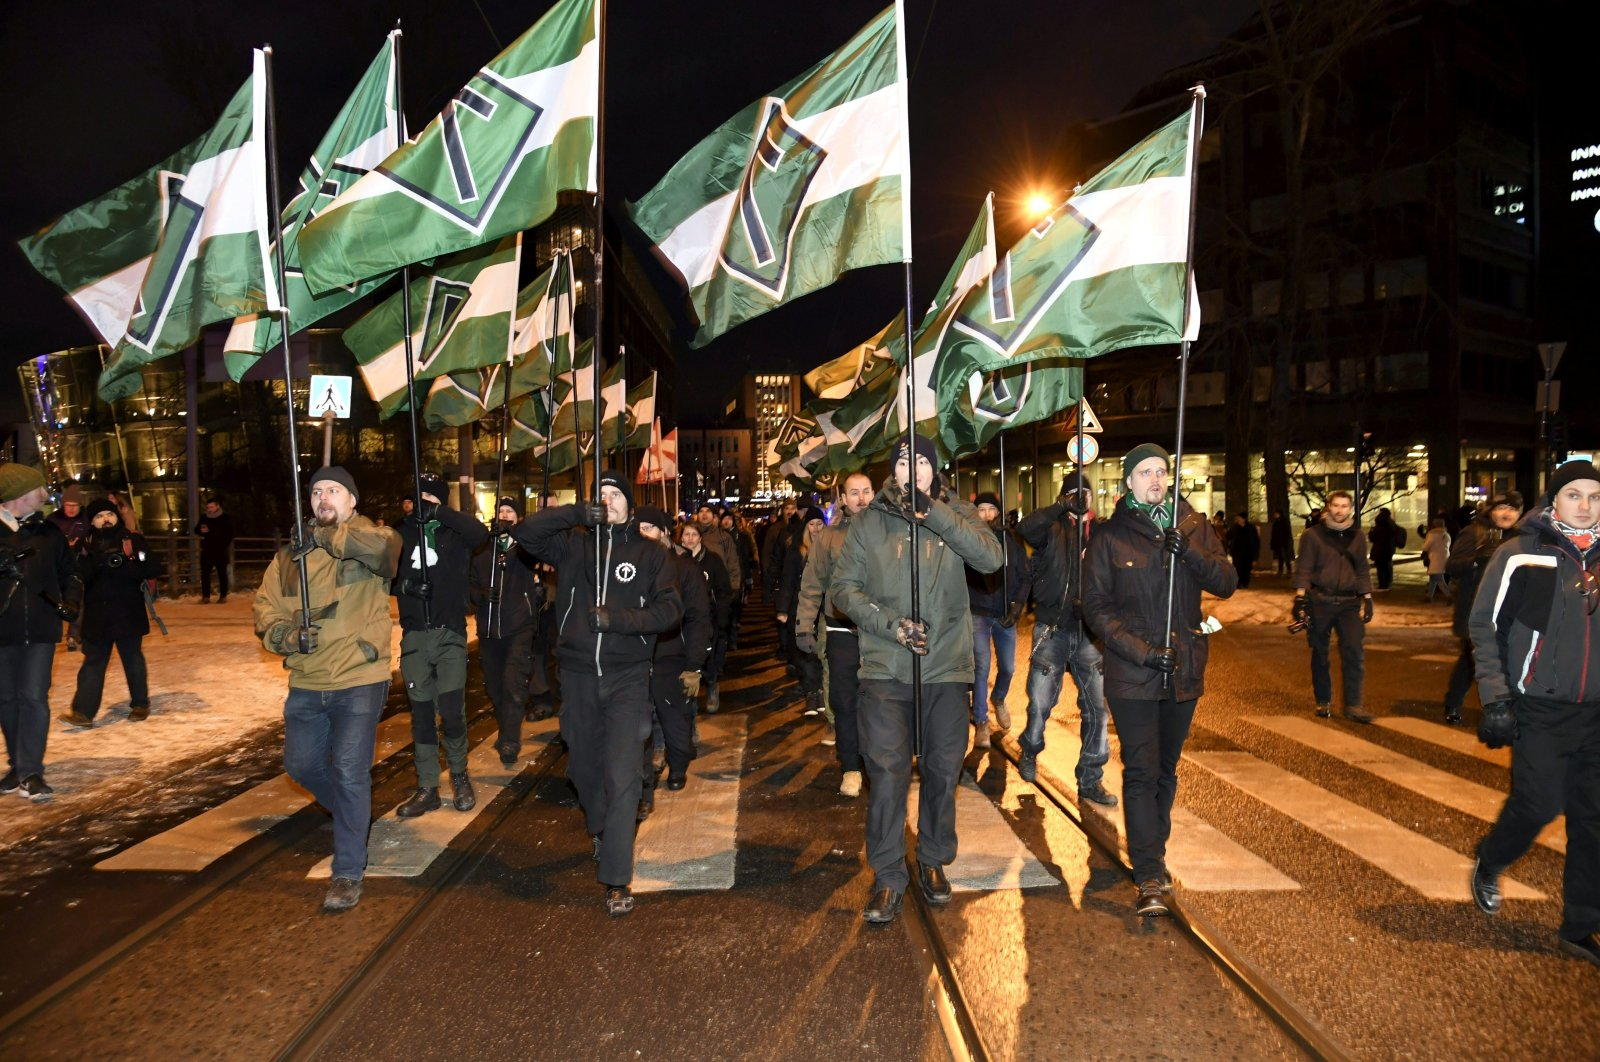 Members of the far-right group Nordic Resistance Movement march during the festivities of the centenary of Finnish independence, Helsinki, Dec. 6, 2017. (REUTERS Photo)